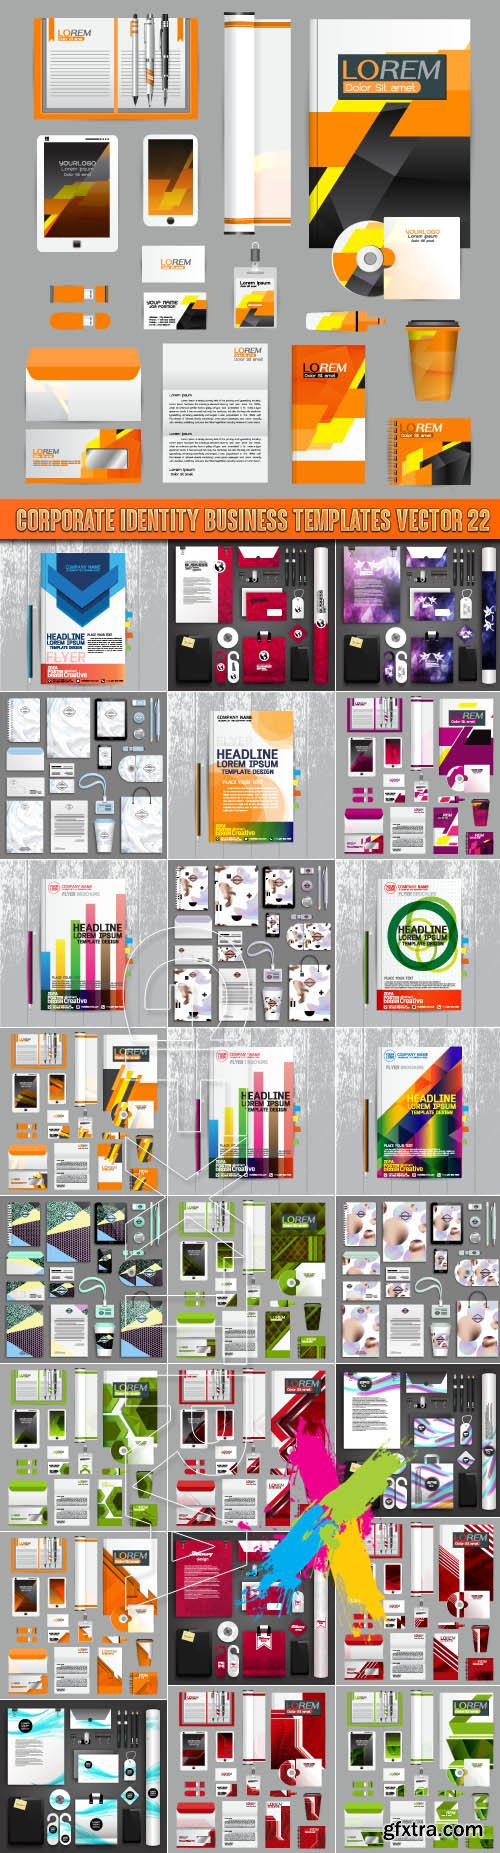 Corporate identity business templates vector 22